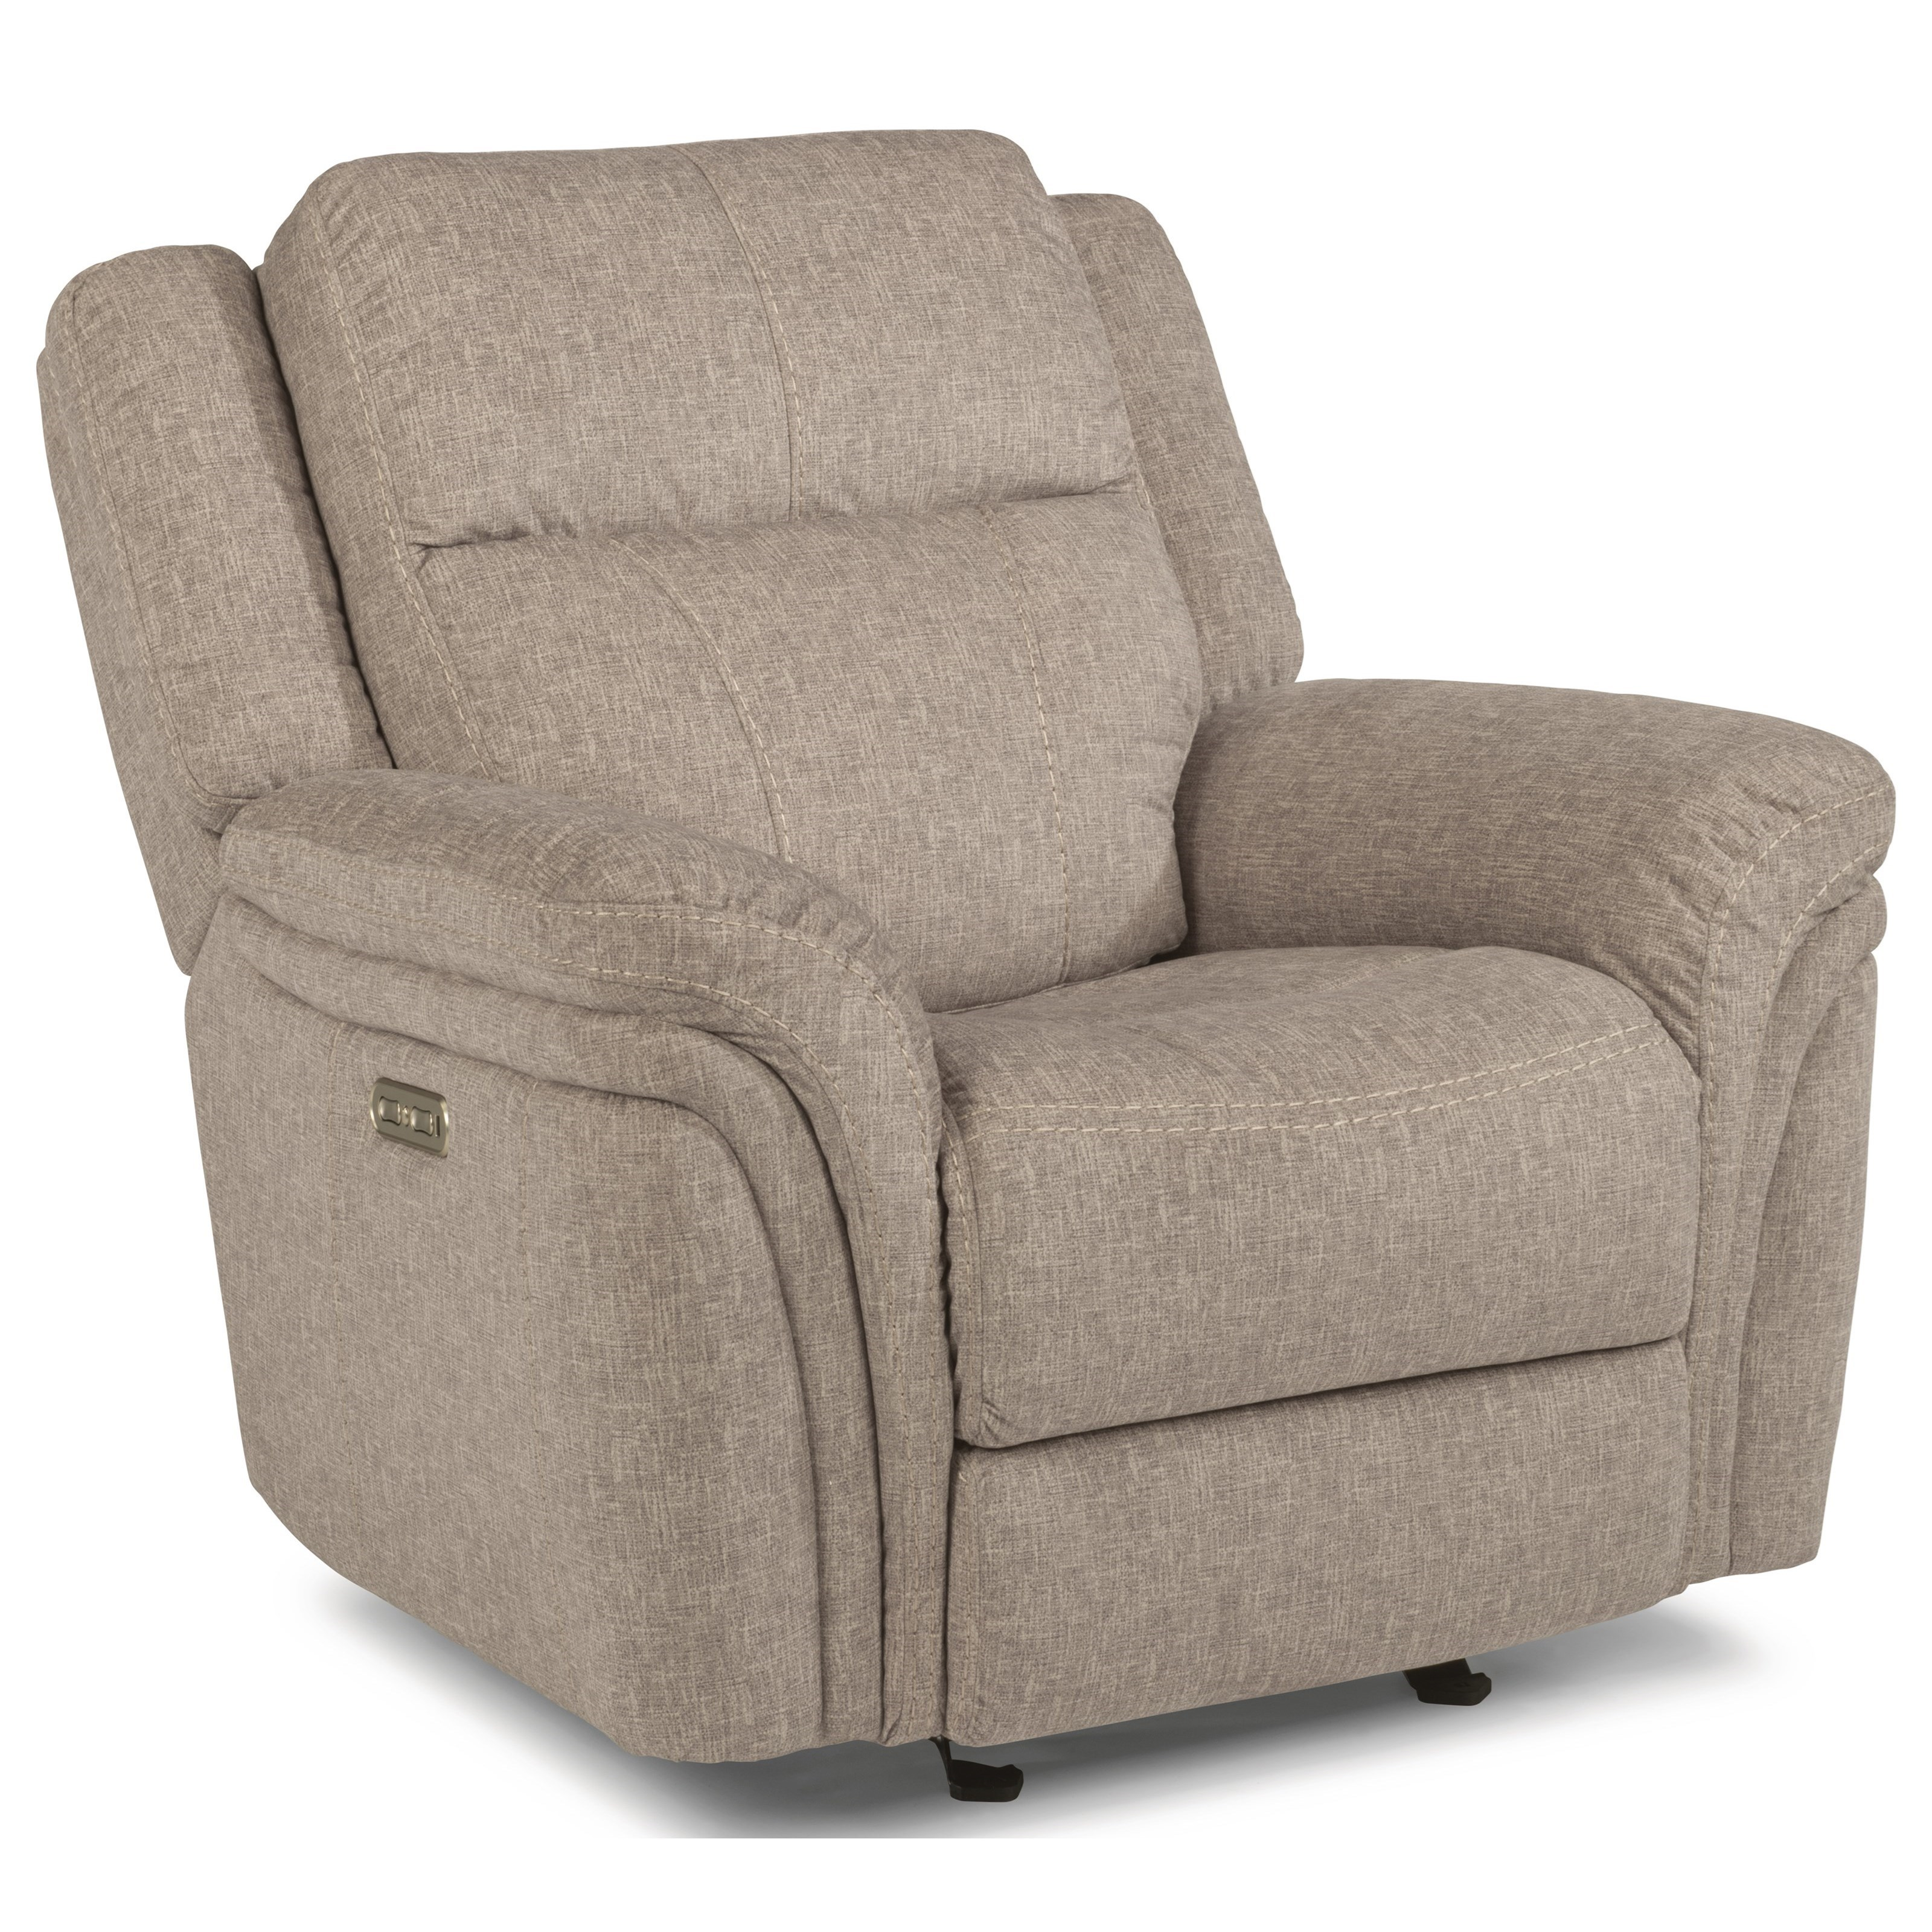 Flexsteel Sofa Mission: Silas Casual Power Gliding Recliner